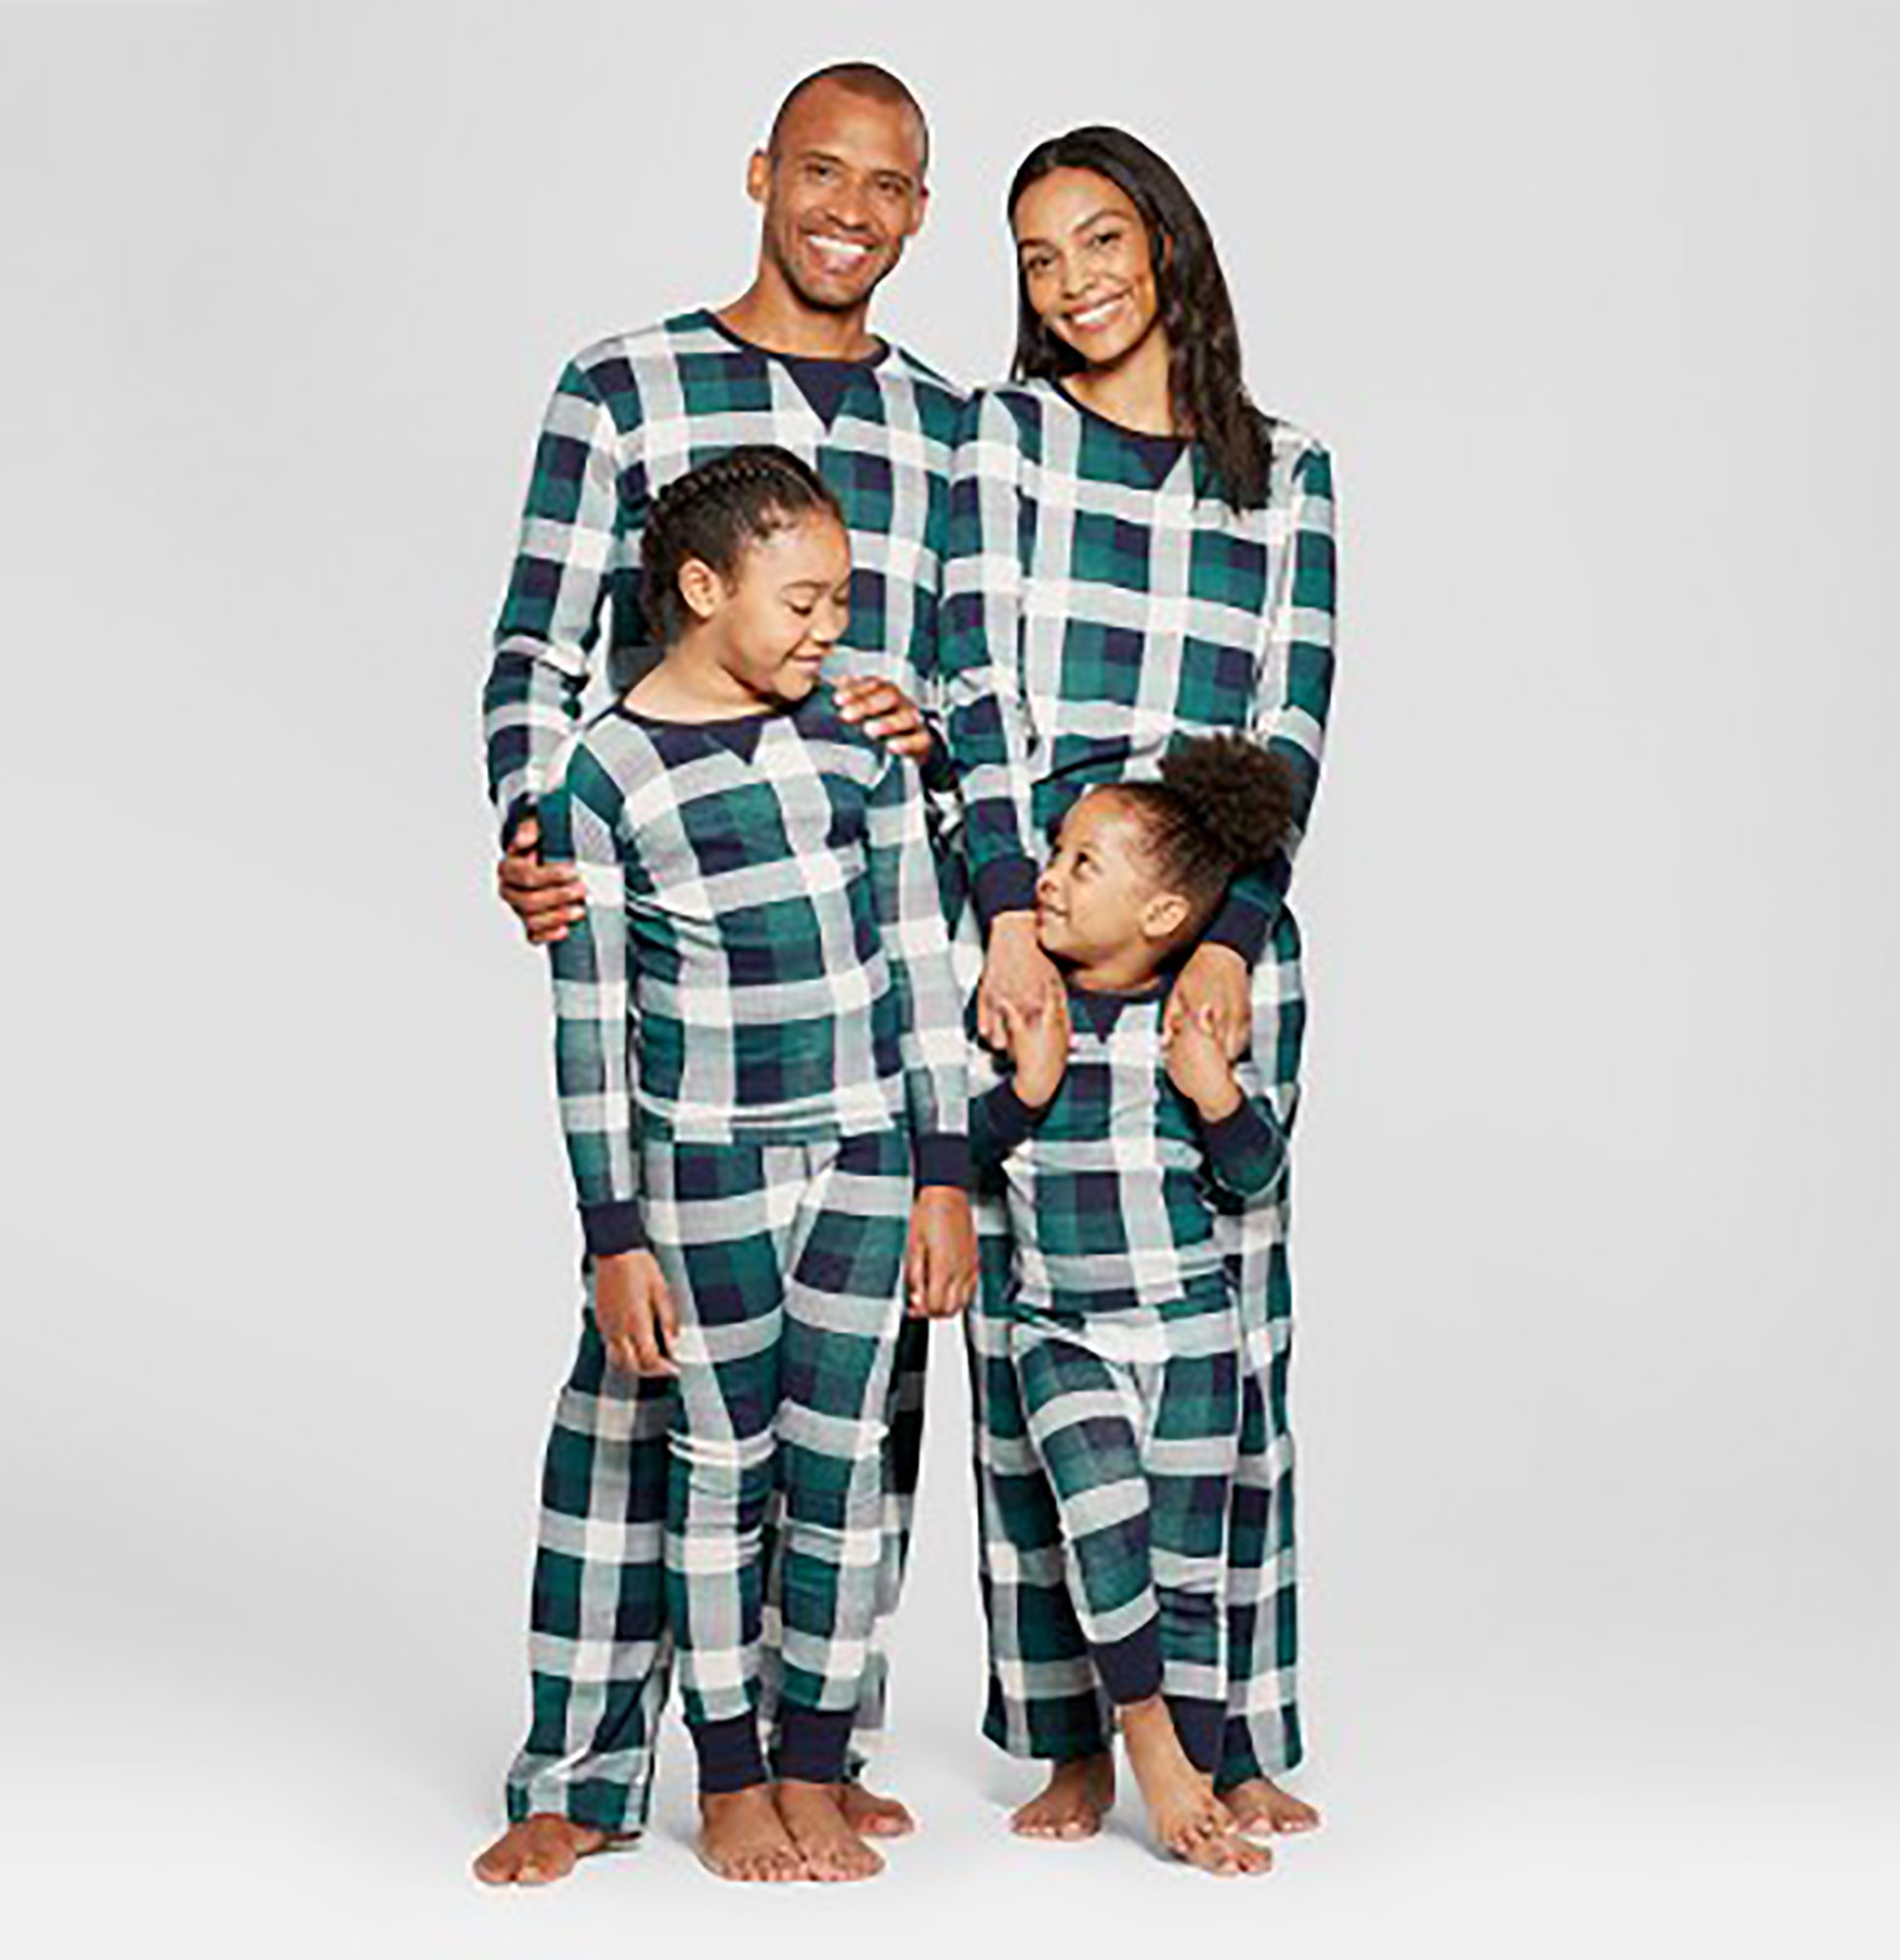 a55a0c53aed6 The Best Matching Family Christmas Pajamas for 2018